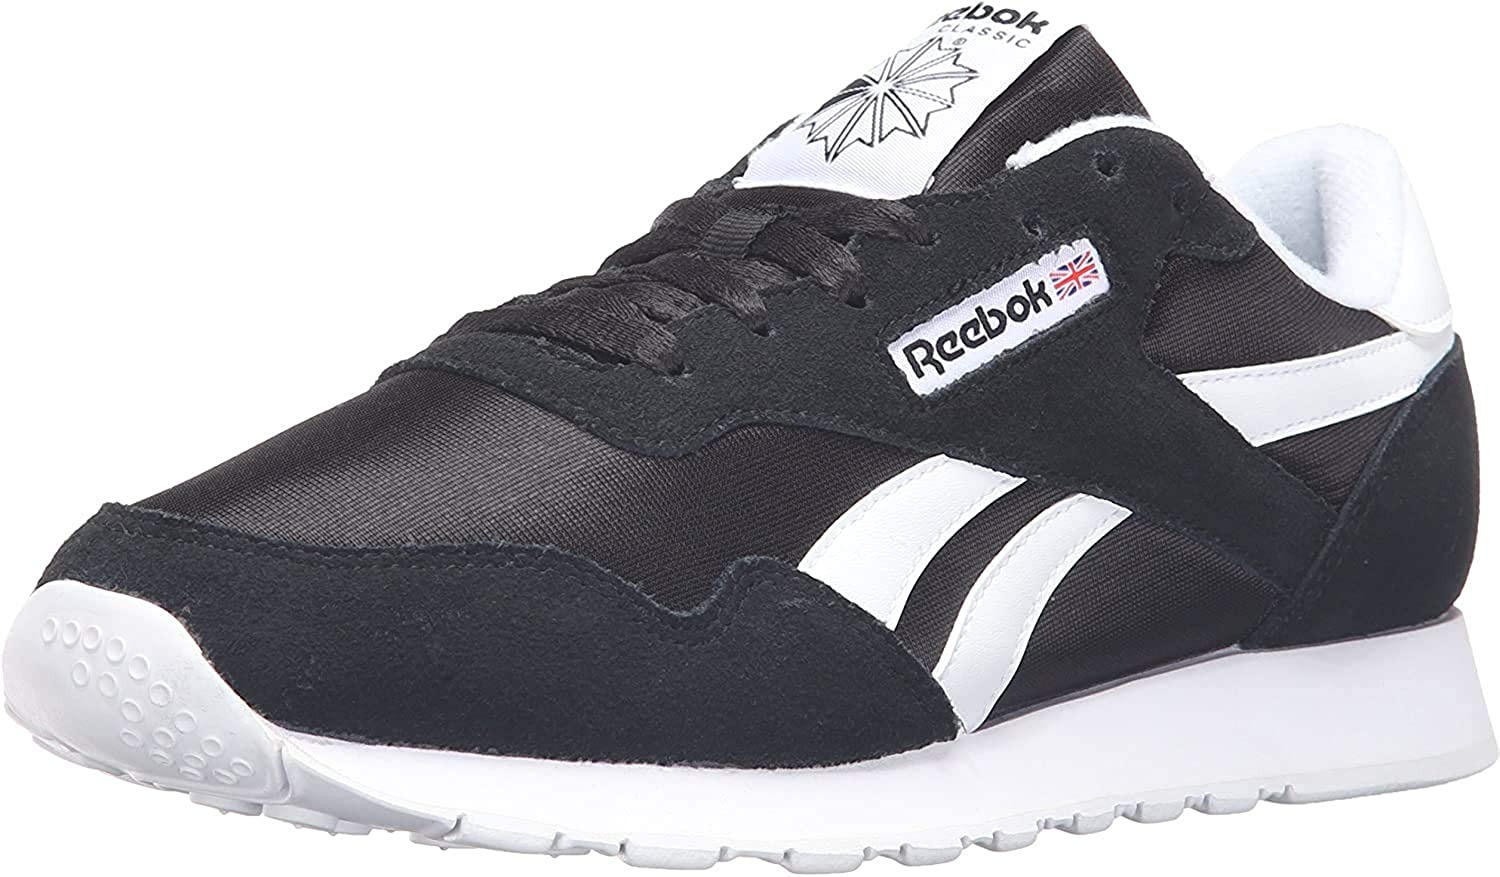 matar Resistente esposa  Amazon.com | Reebok Men's Royal Nylon Classic Sneaker Fashion | Fashion  Sneakers